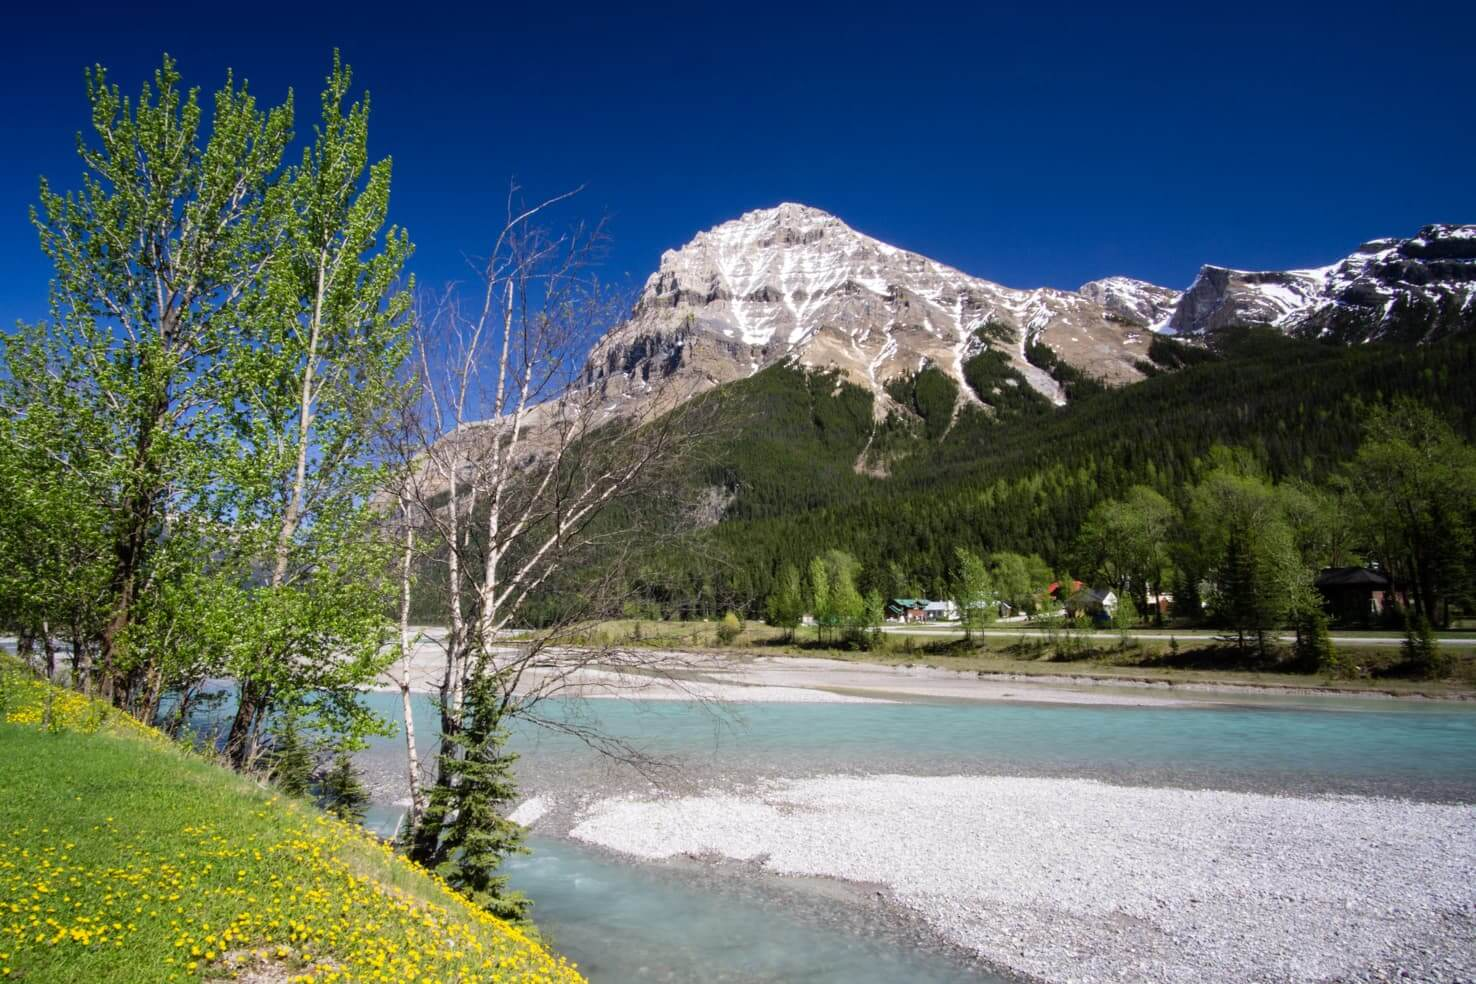 100 best things to do in Banff National Park, Canada - Visit Yoho National Park and its capital Field